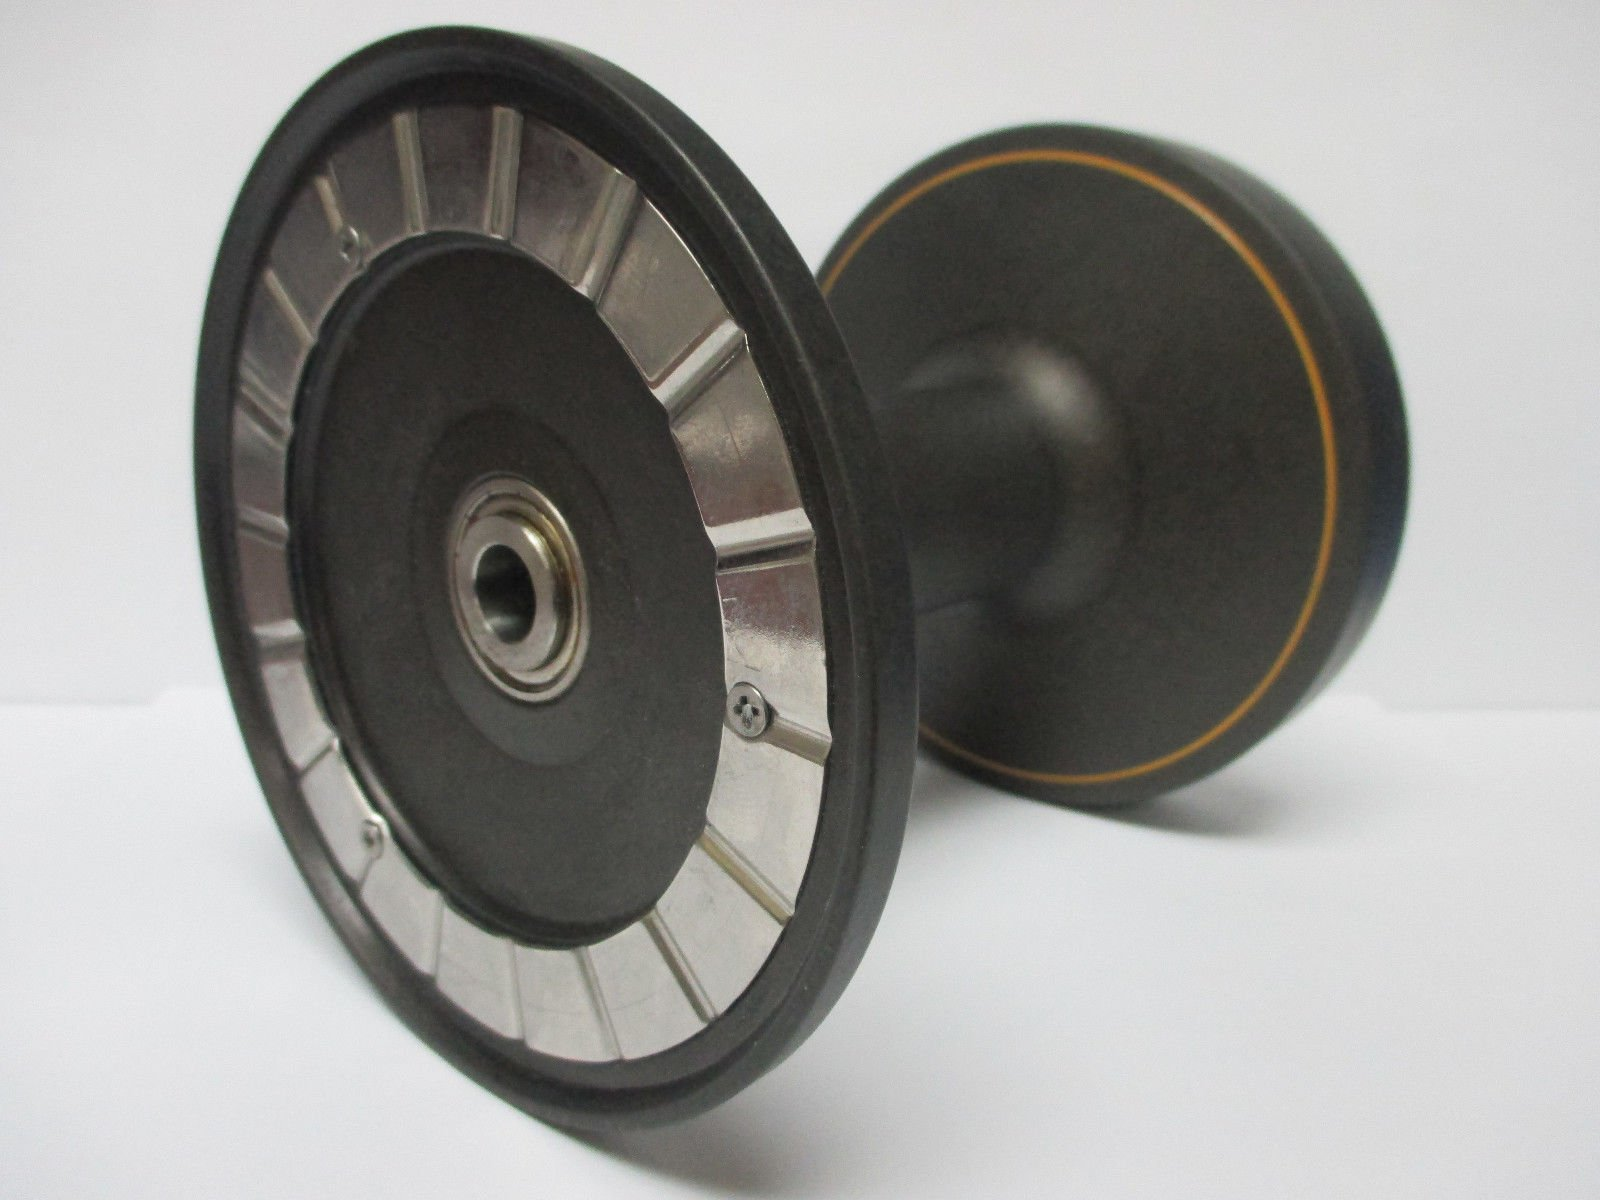 DUEL BIG GAME REEL PART - 12/0 WS Two Speed 12/0 WS Wide - Spool Assembly